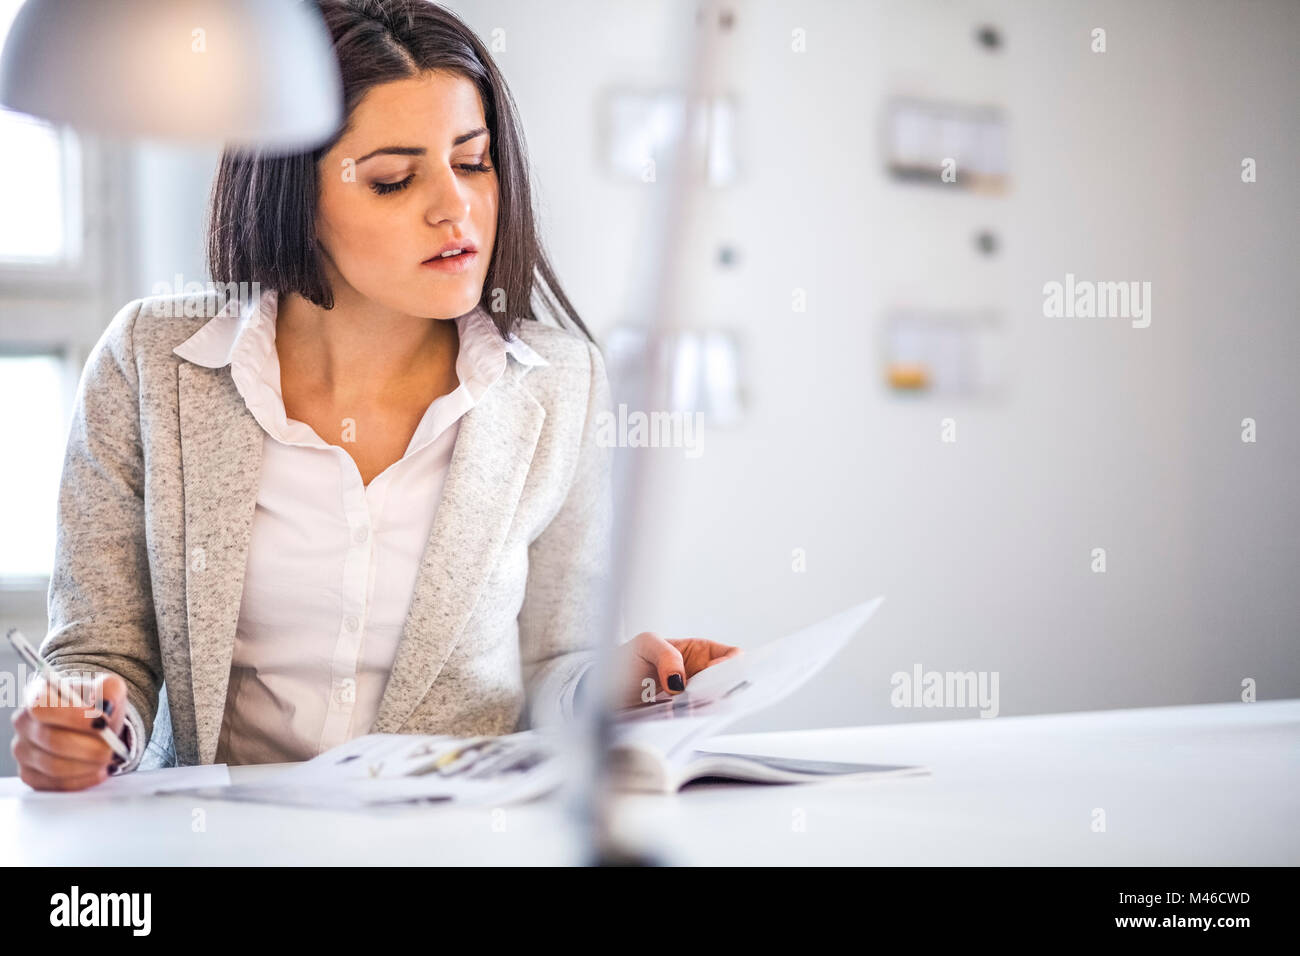 Businesswoman reading brochure tout en prenant des notes in office Photo Stock